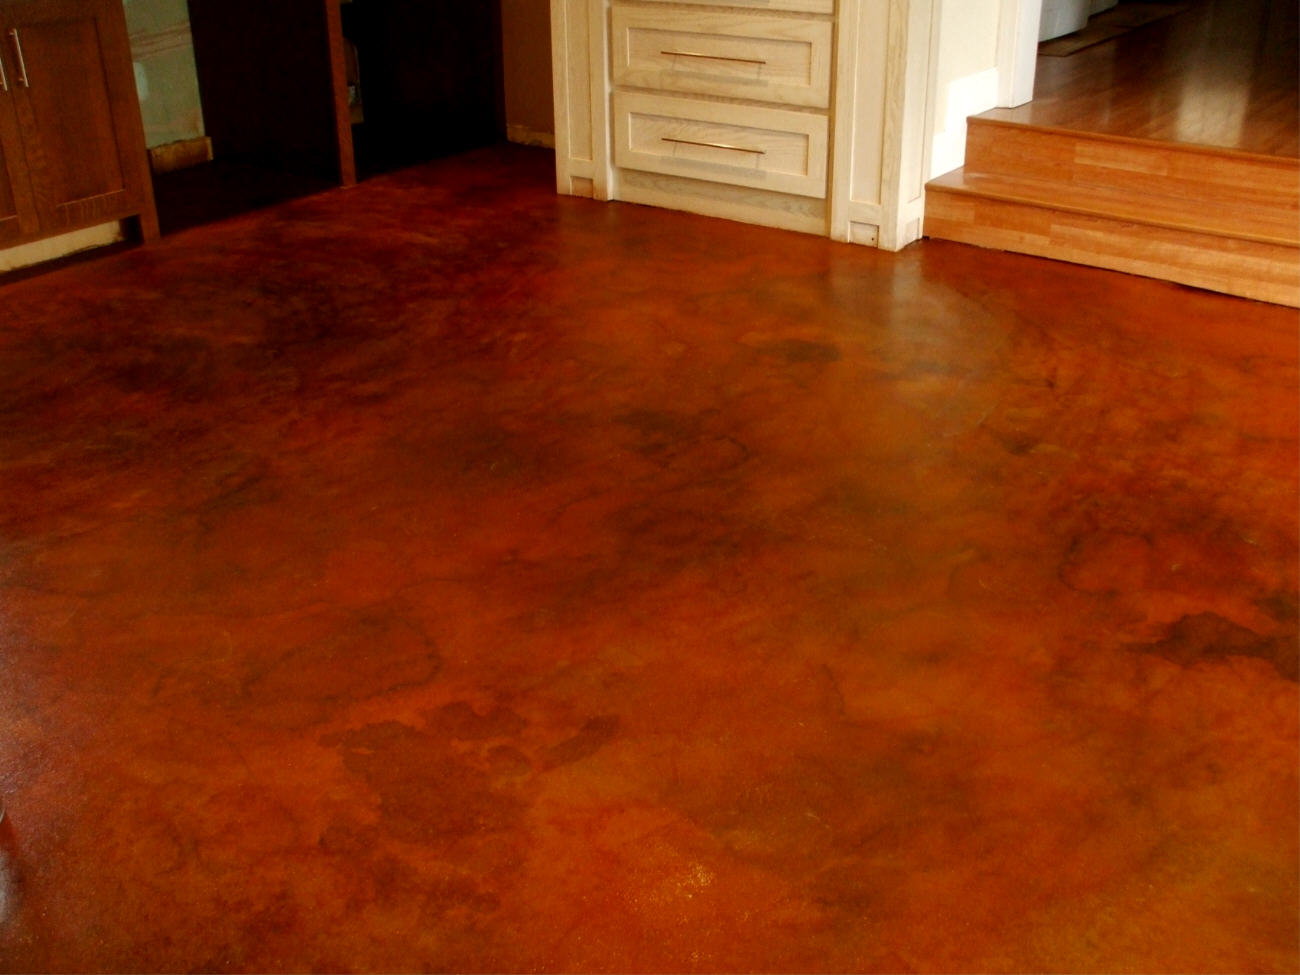 Types of concrete floor coats how to build a house for Stained concrete floors